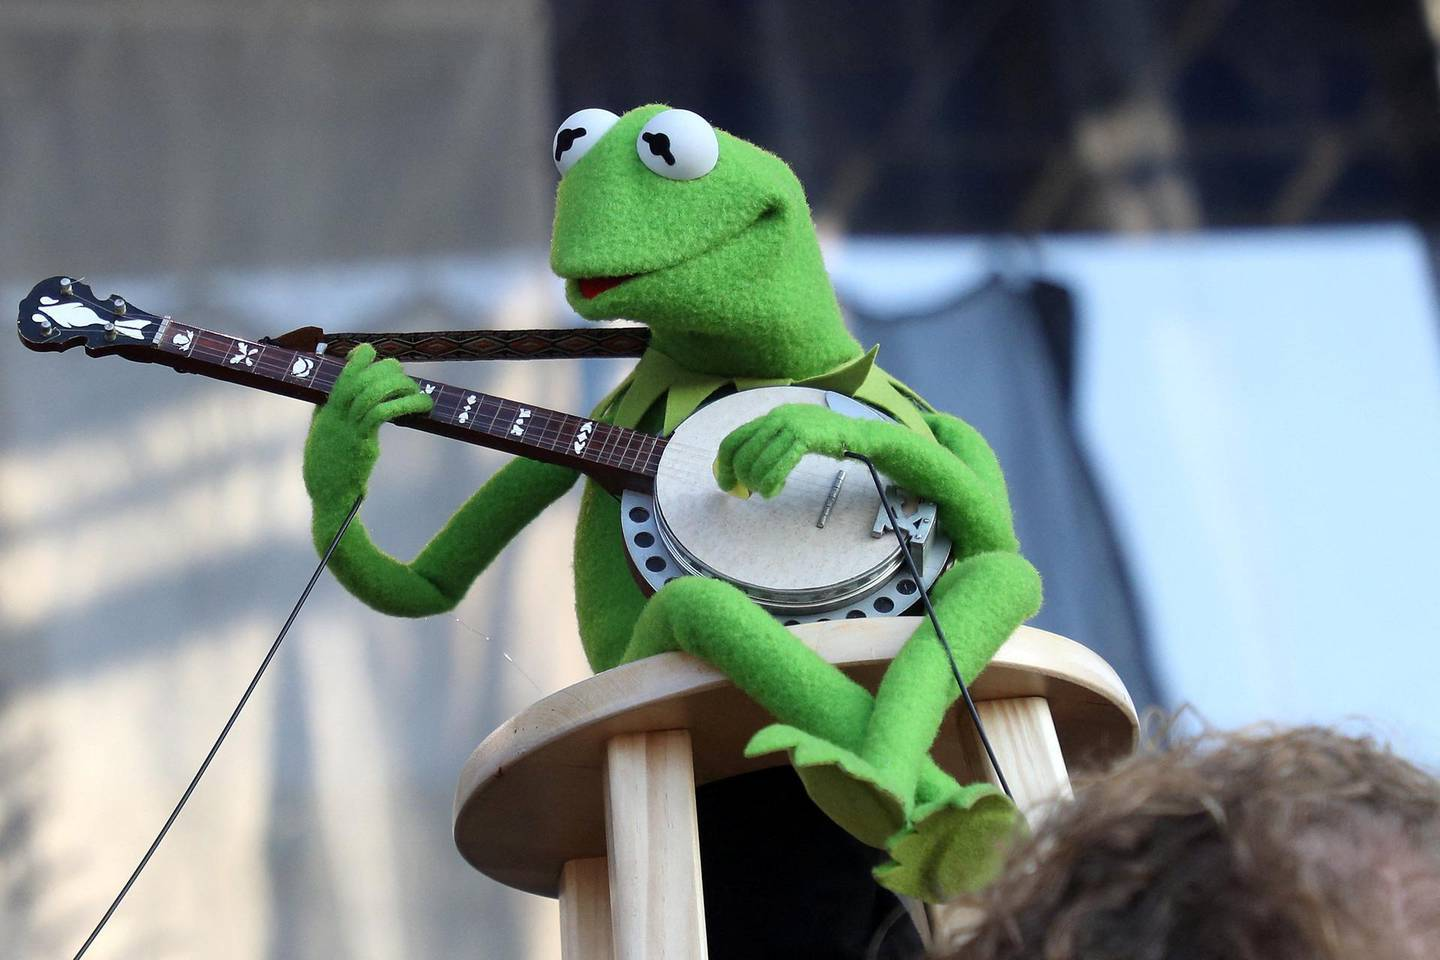 """NEWPORT, RHODE ISLAND - JULY 28: Kermit the Frog performs during the """"If I Had A Song"""" tribute set during day three of the 2019 Newport Folk Festival at Fort Adams State Park on July 28, 2019 in Newport, Rhode Island.   Mike Lawrie/Getty Images/AFP (Photo by Mike Lawrie / GETTY IMAGES NORTH AMERICA / Getty Images via AFP)"""